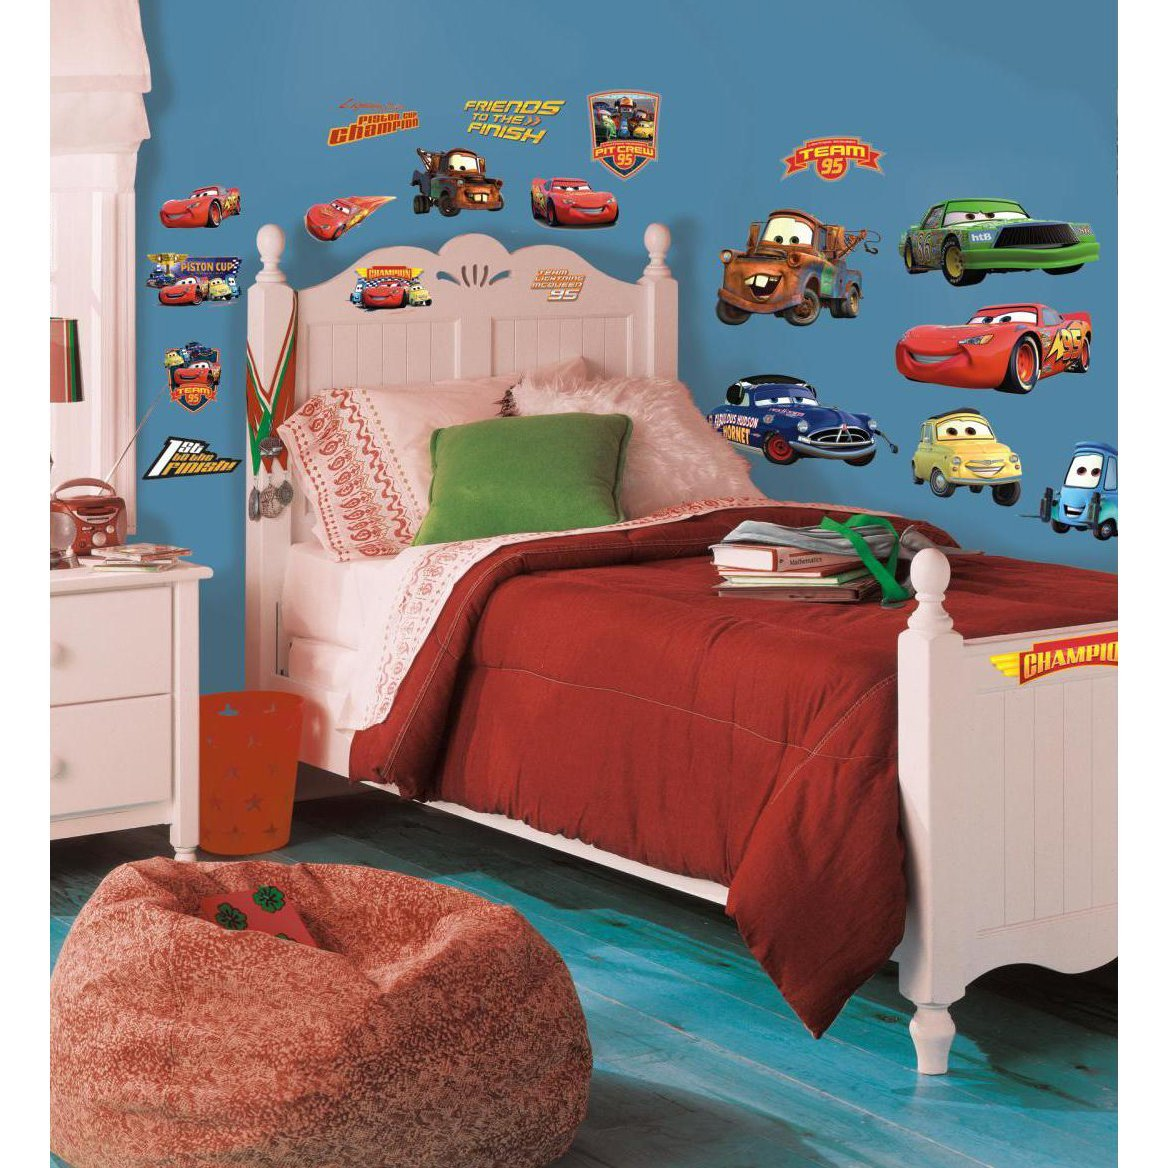 Thedecofactory 539035 Disney Cars Piston Cup ROOMMATES REPOSITIONNABLES Vinyle Multicolore 19 Stickers 104 x 26 x 2,5 cm